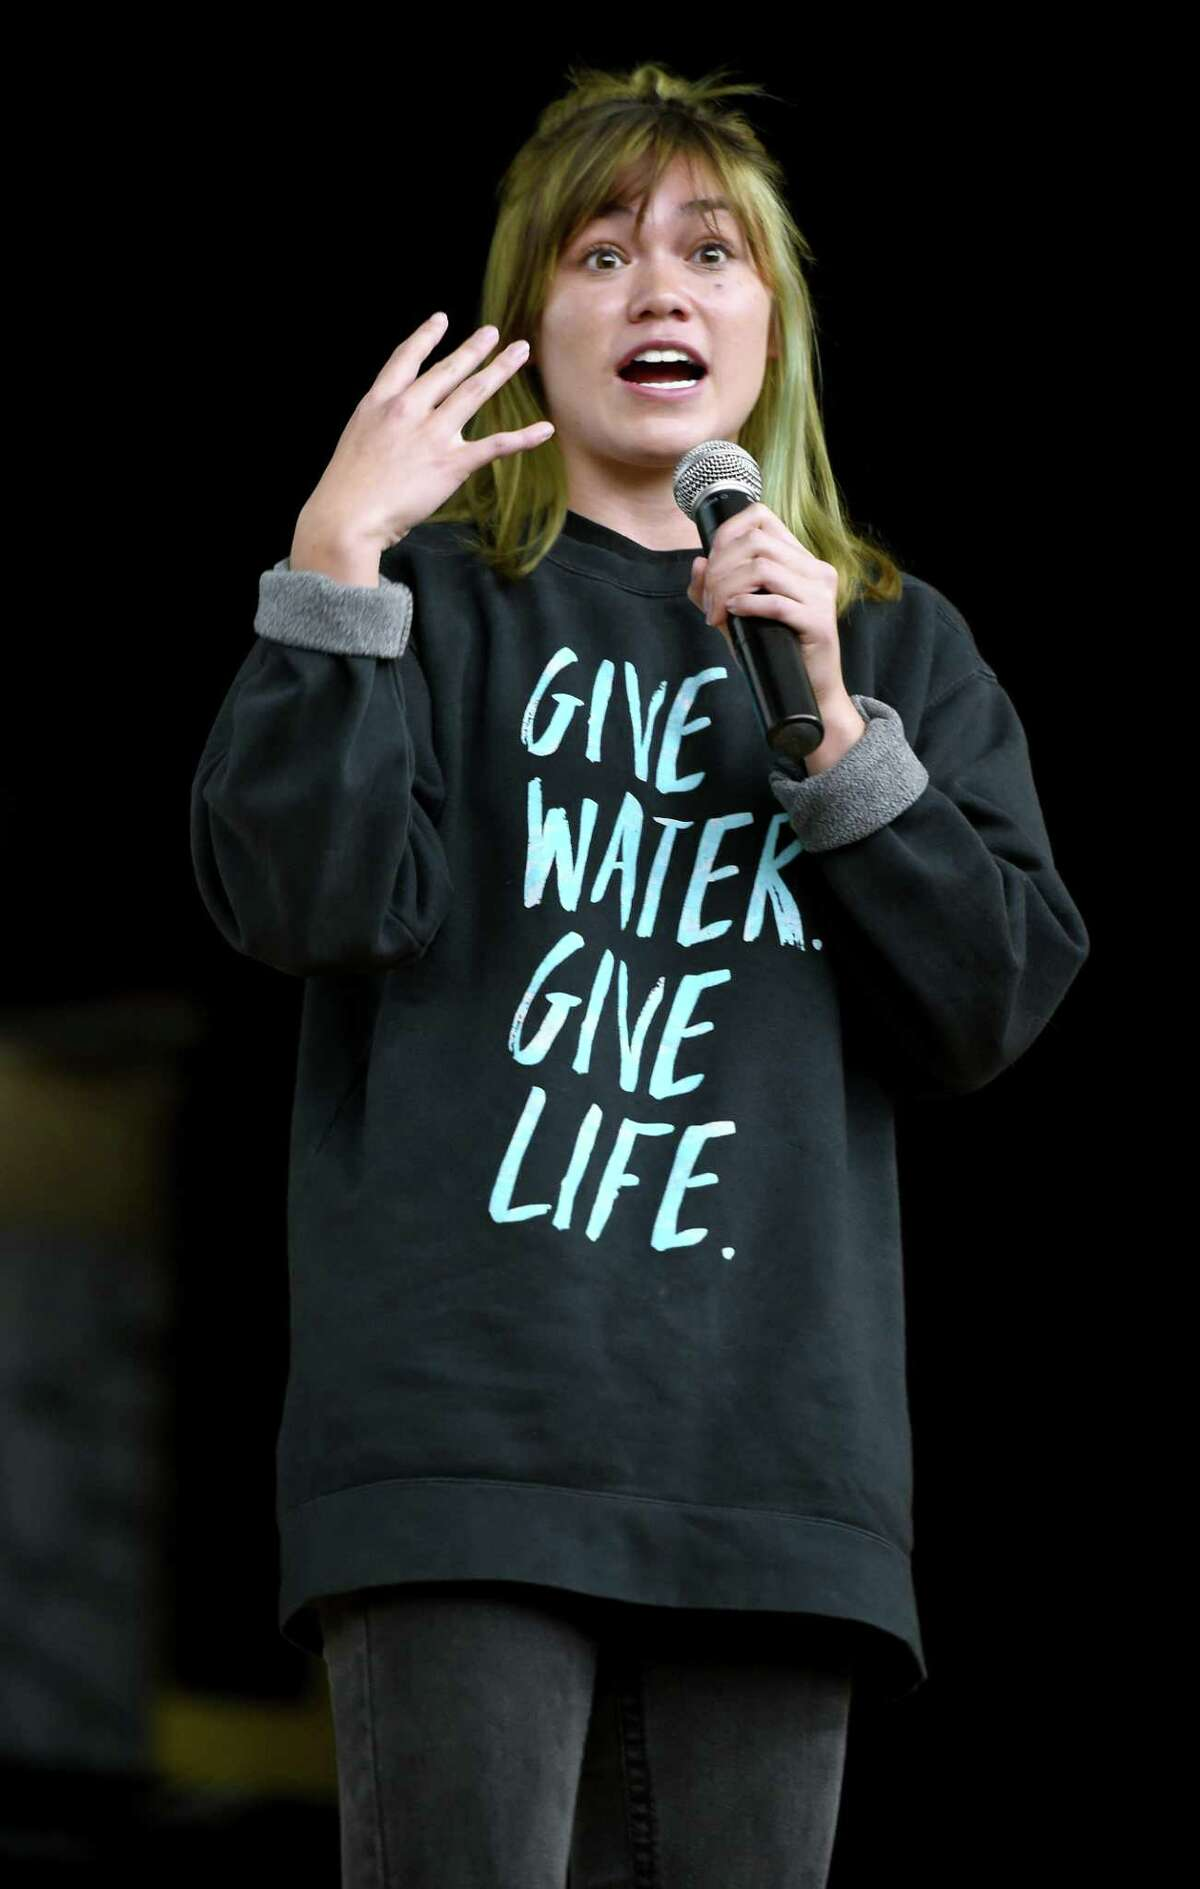 Darcy Kerrigan of the Thirst Project speaks at Jonathan Law High School in Milford Monday at the invitation of the Key Club about the lack of clean drinking water in Swaziland and much of the world.